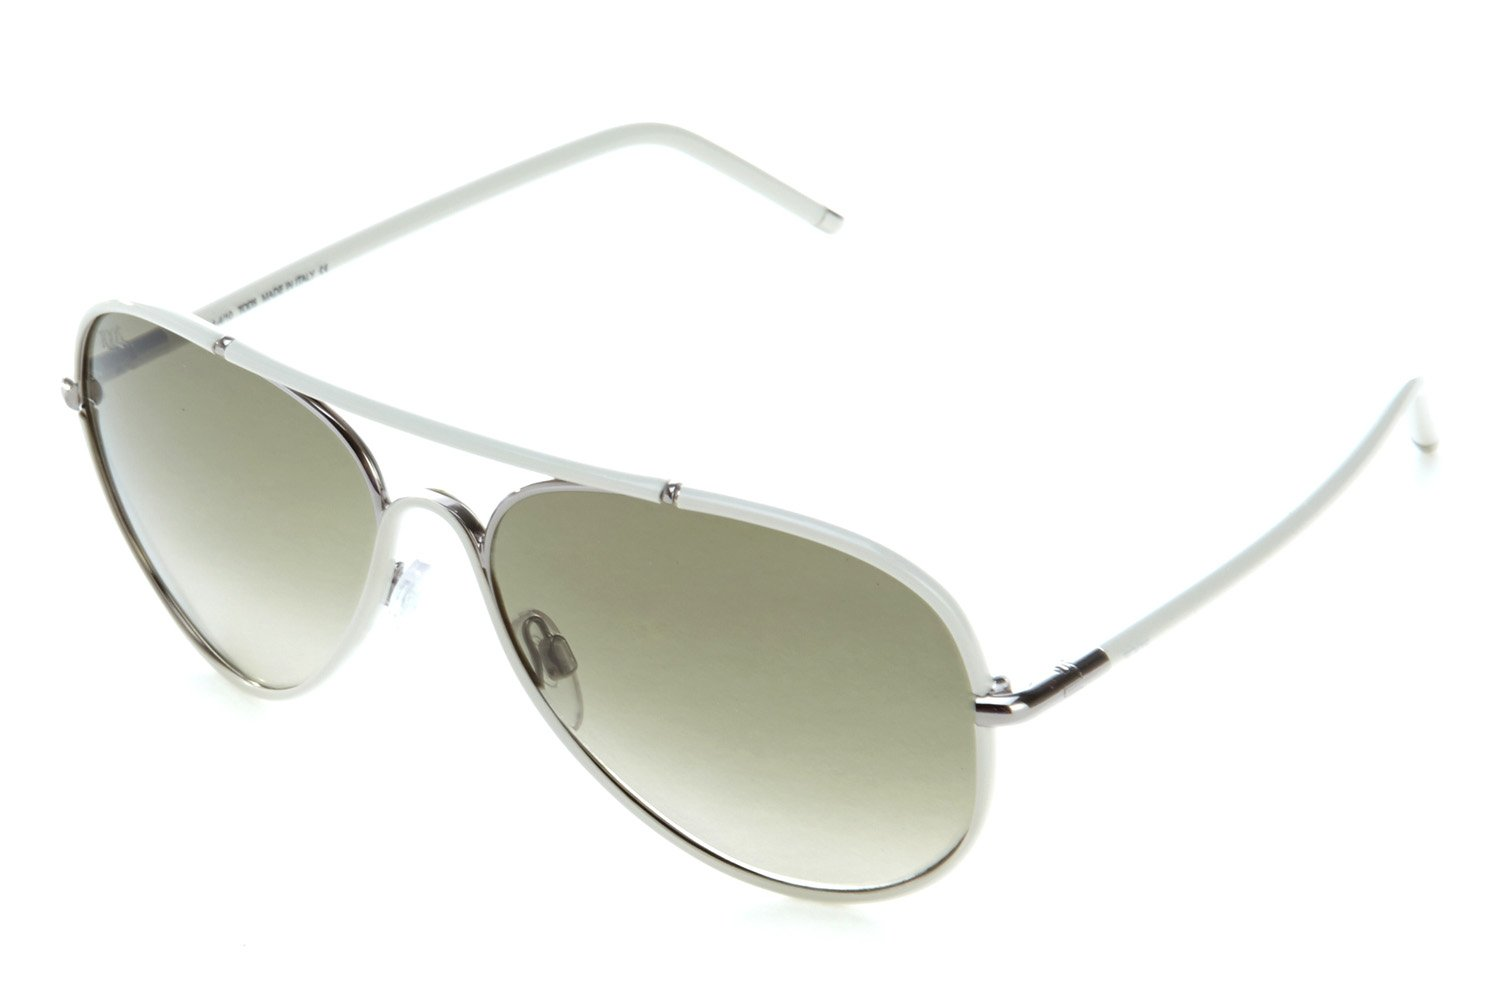 Tods Sunglasses Style: TO0037/S-59/135-14P Size: OS by Tod's